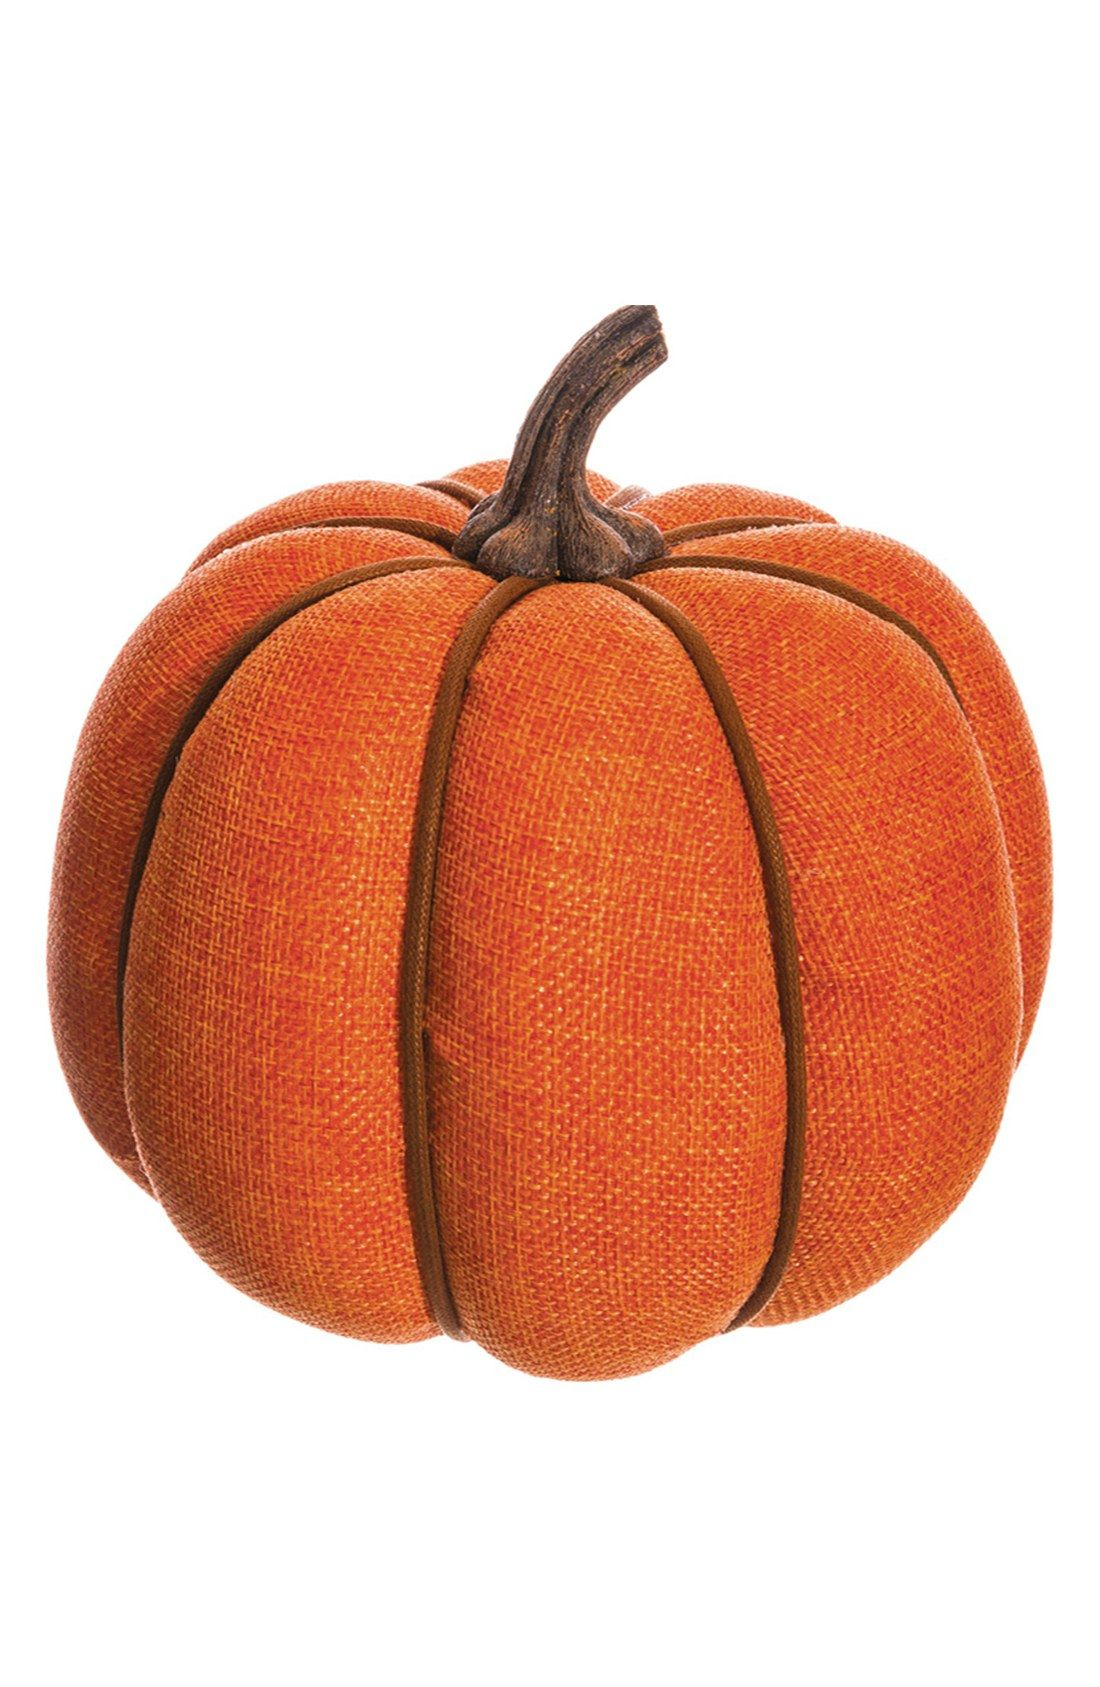 This burlap-wrapped pumpkin lends a touch of rustic charm to the seasonal décor.